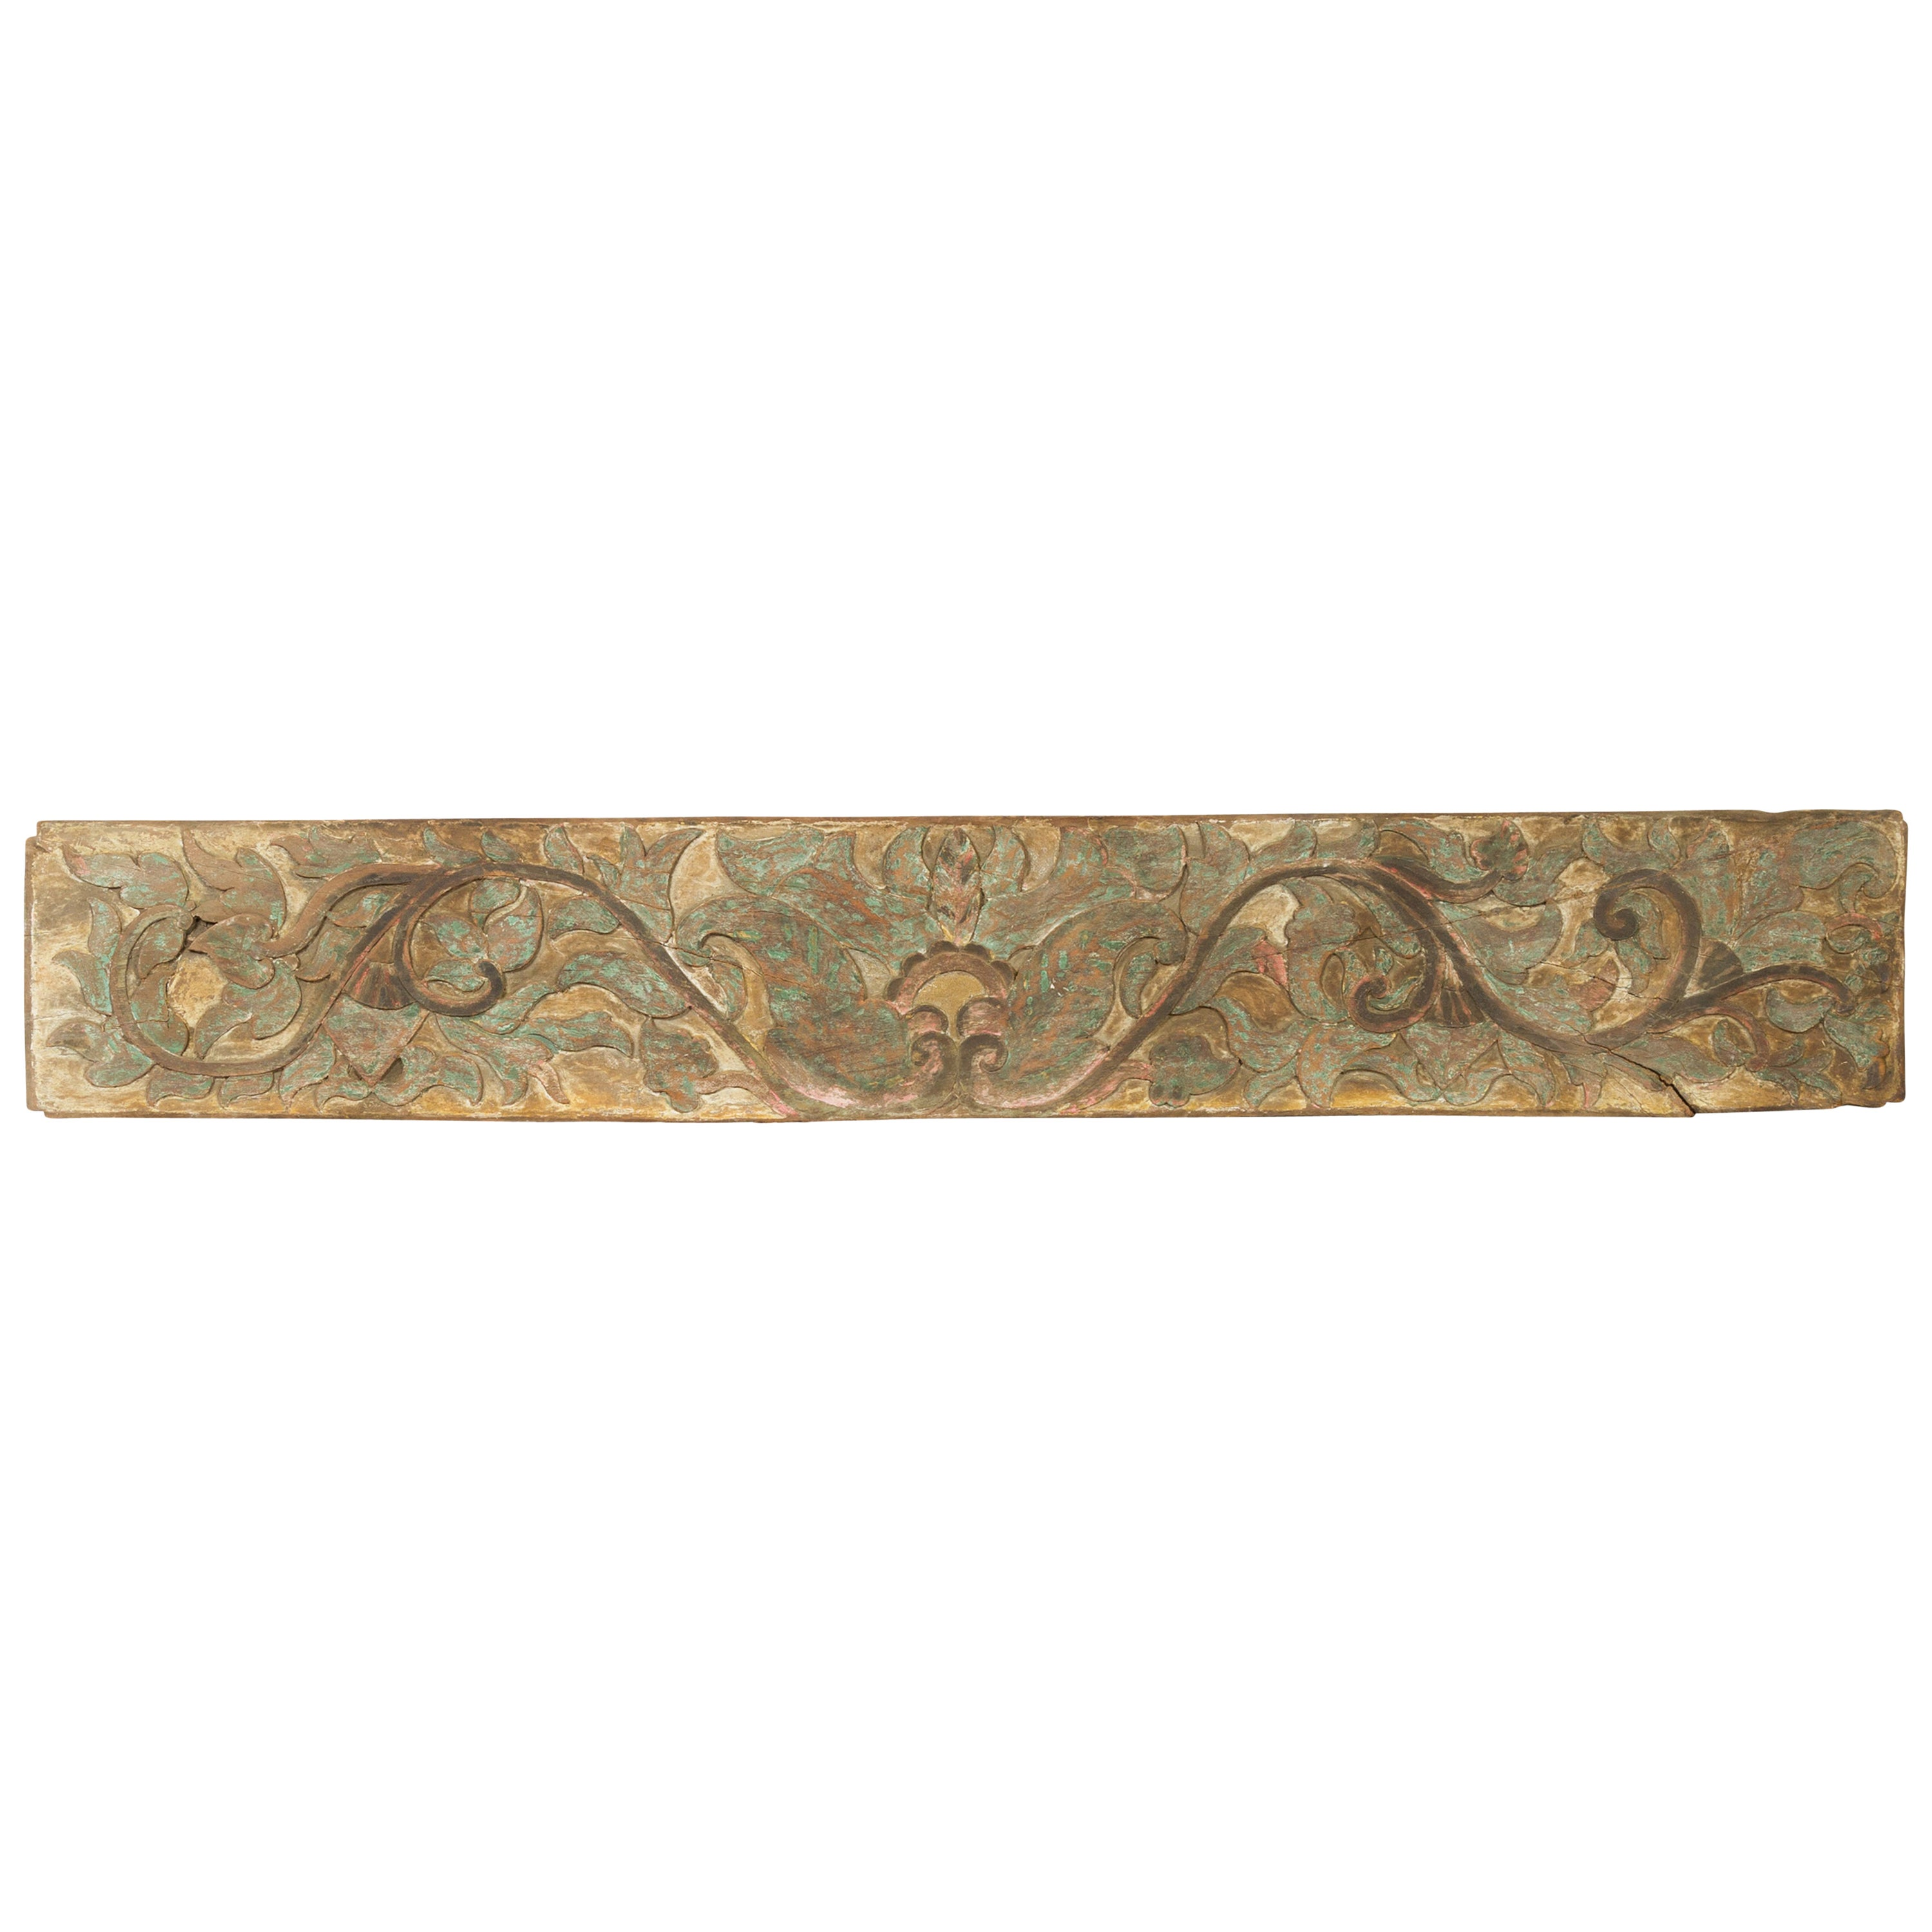 Antique Indonesian Painted and Carved Wood Door Panel with Scrolls and Foliage